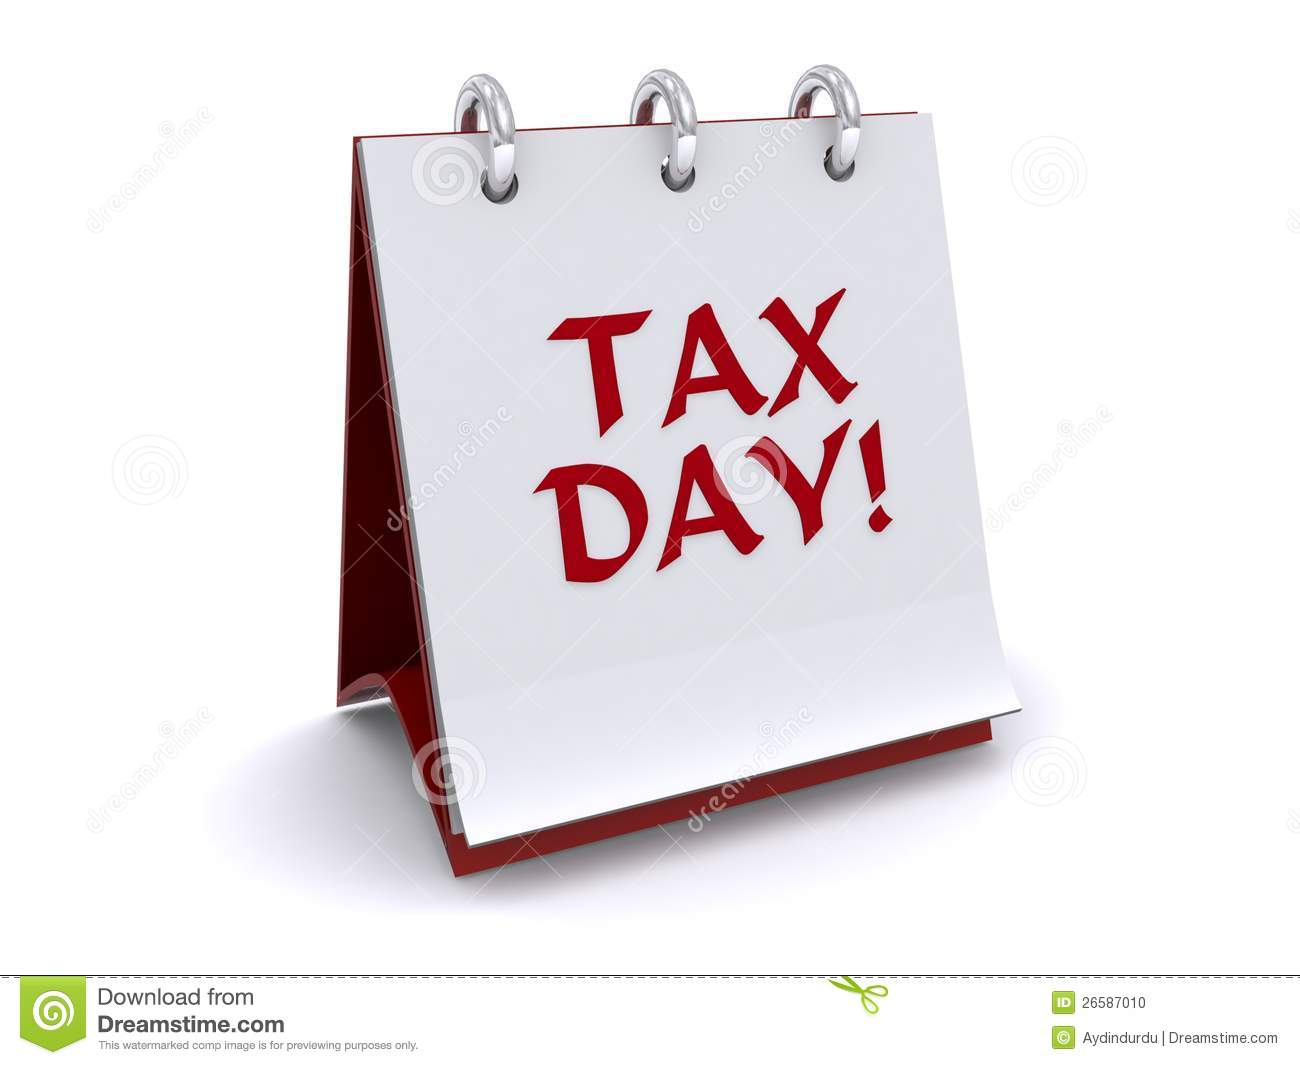 Tax Day Flip Book Stock Photo - Image: 26587010